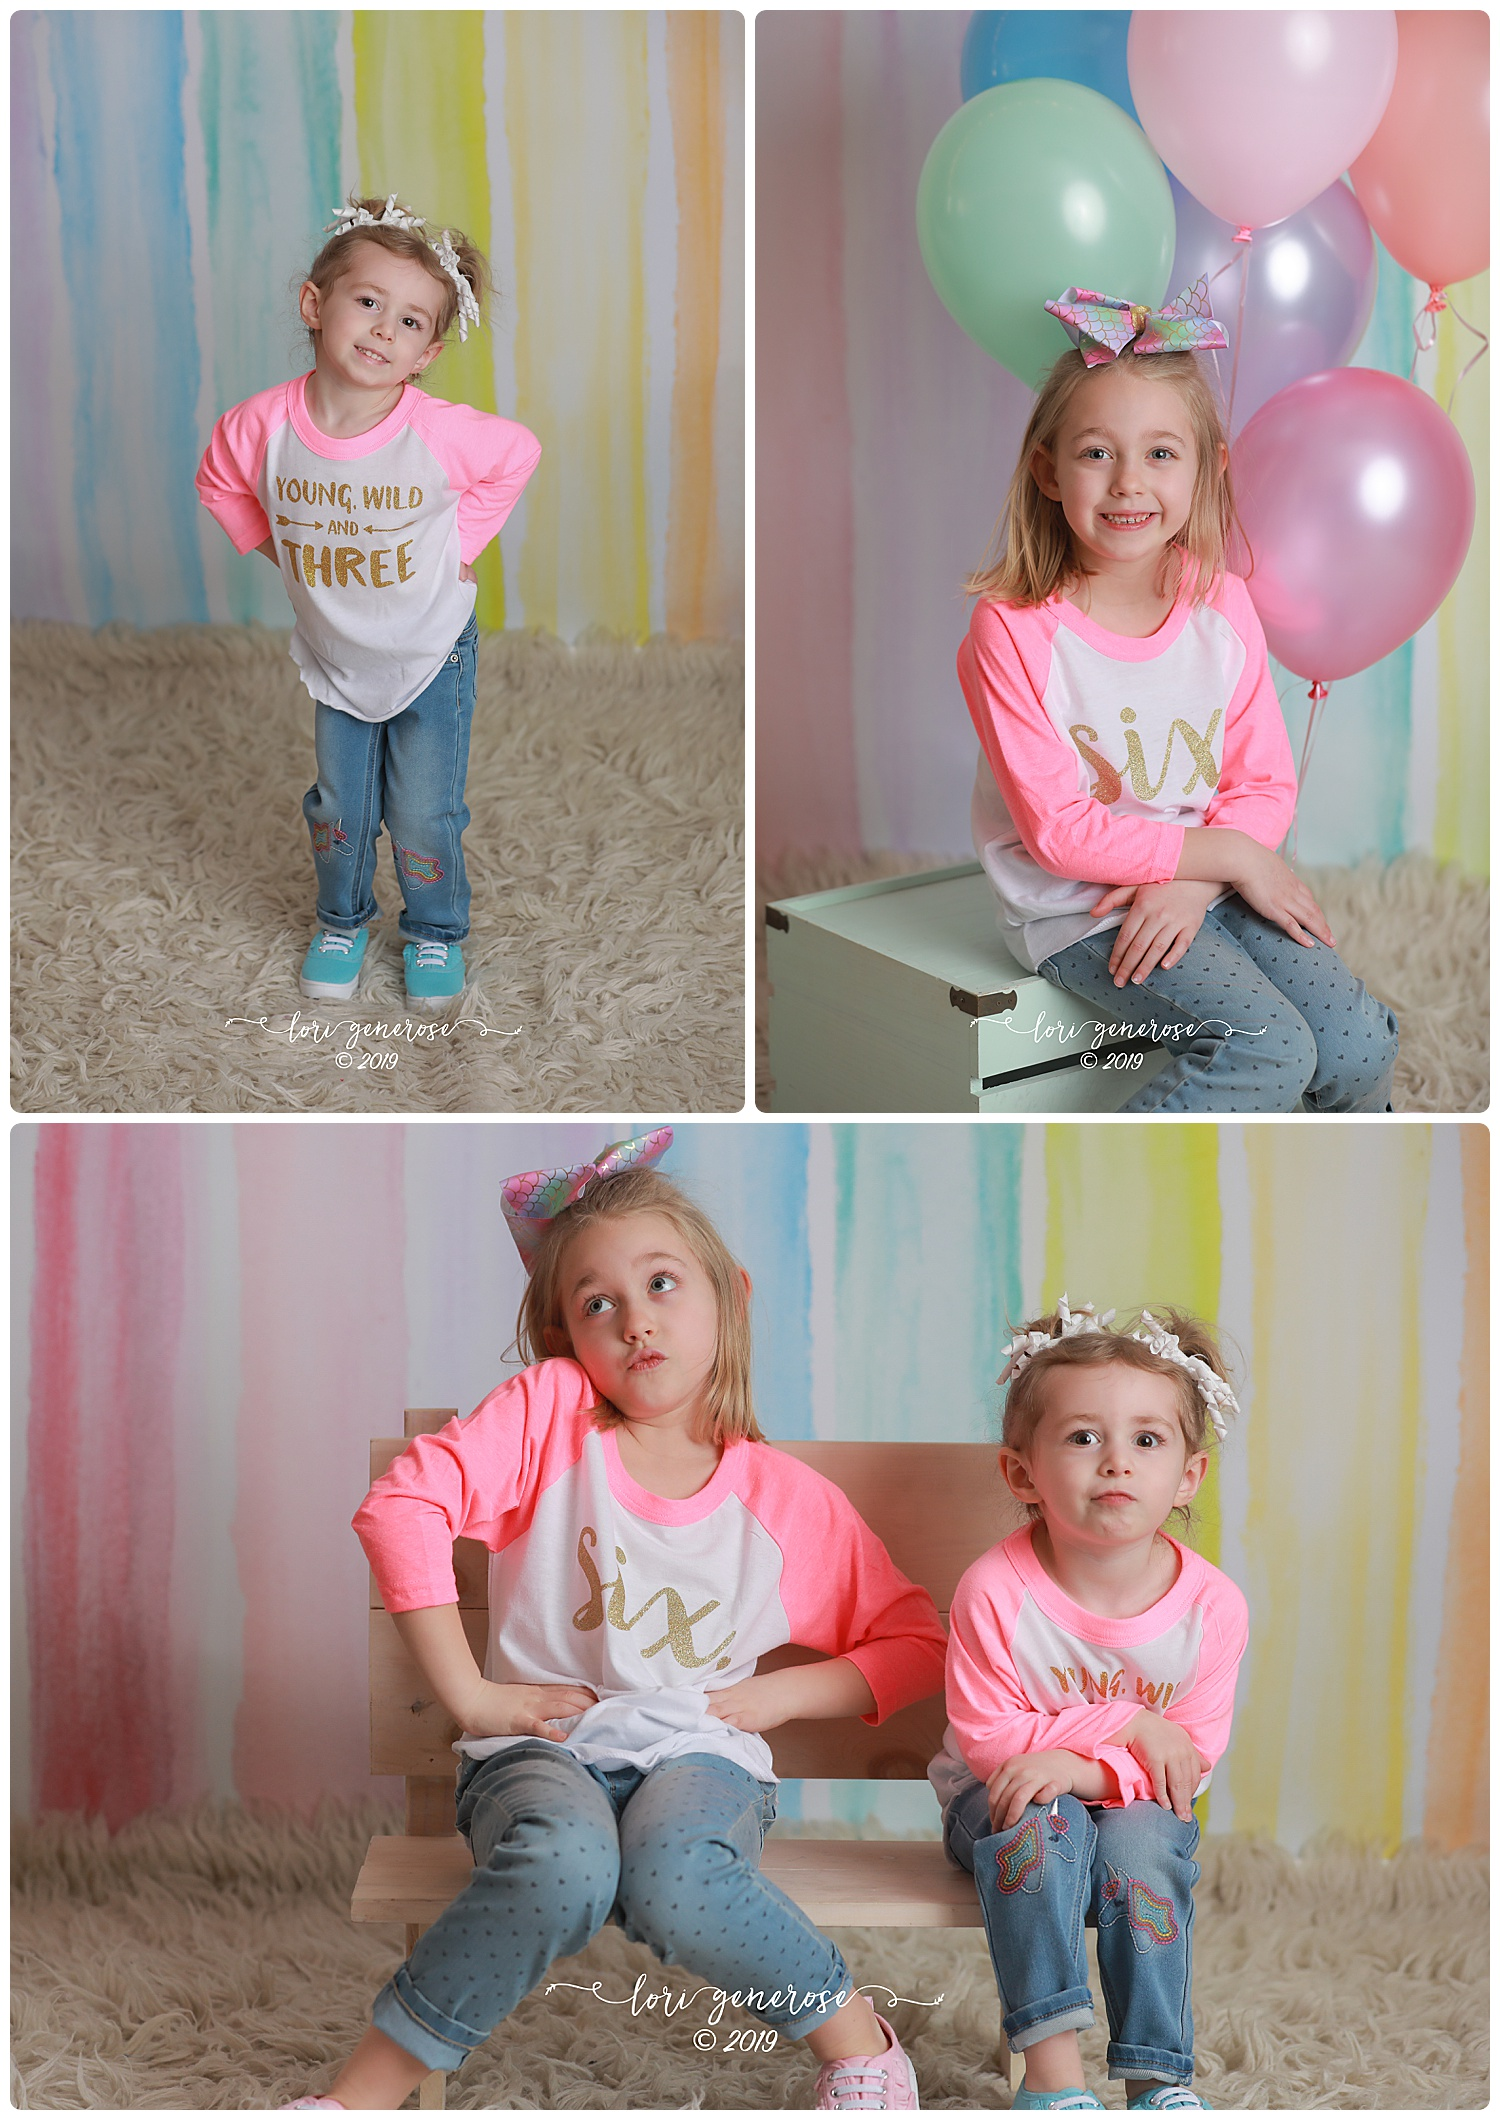 Kaycee is turning SIX and Camryn is THREE 💕 Soooo much history between this family and I. Kaycee was just a little peanut in my basement at my house when we first met and since then, I've captured her birthday photos every year, mom and dad's engagement, wedding day, family photos, the addition of baby sister and then Cam's yearly photos, too. This right here is why I love what I do. It's families like this that allow me to say that I have the best job in the world. Love you guys ❤️